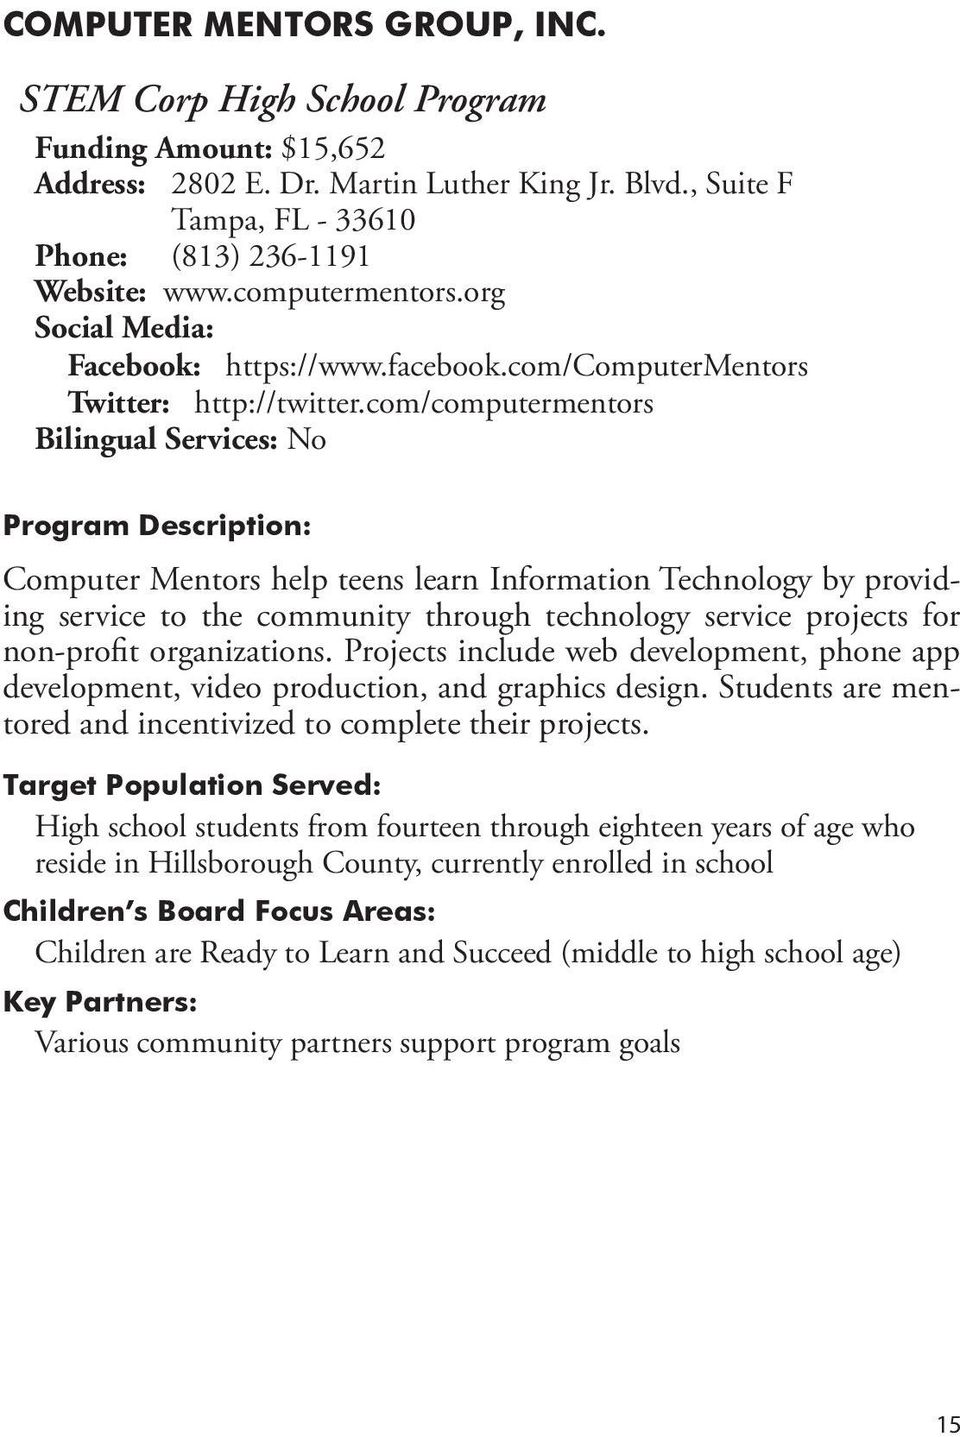 com/computermentors Bilingual Services: No Computer Mentors help teens learn Information Technology by providing service to the community through technology service projects for non-profit